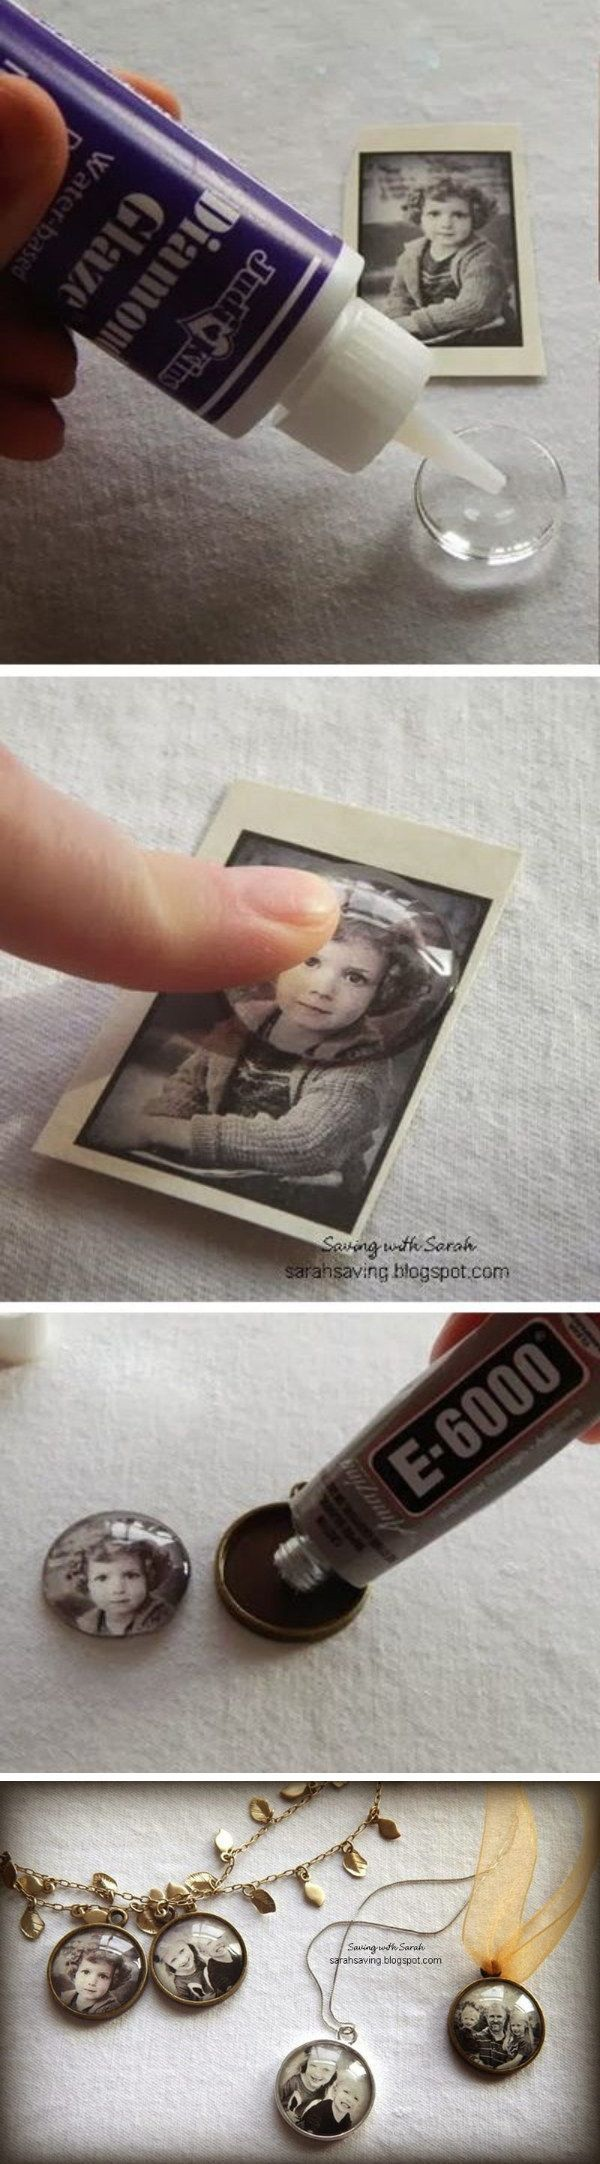 DIY Photo Pendants. These photo pendants are actually really cheap (less than $2.50 each). Would be so fun to use vacation photos from WDW